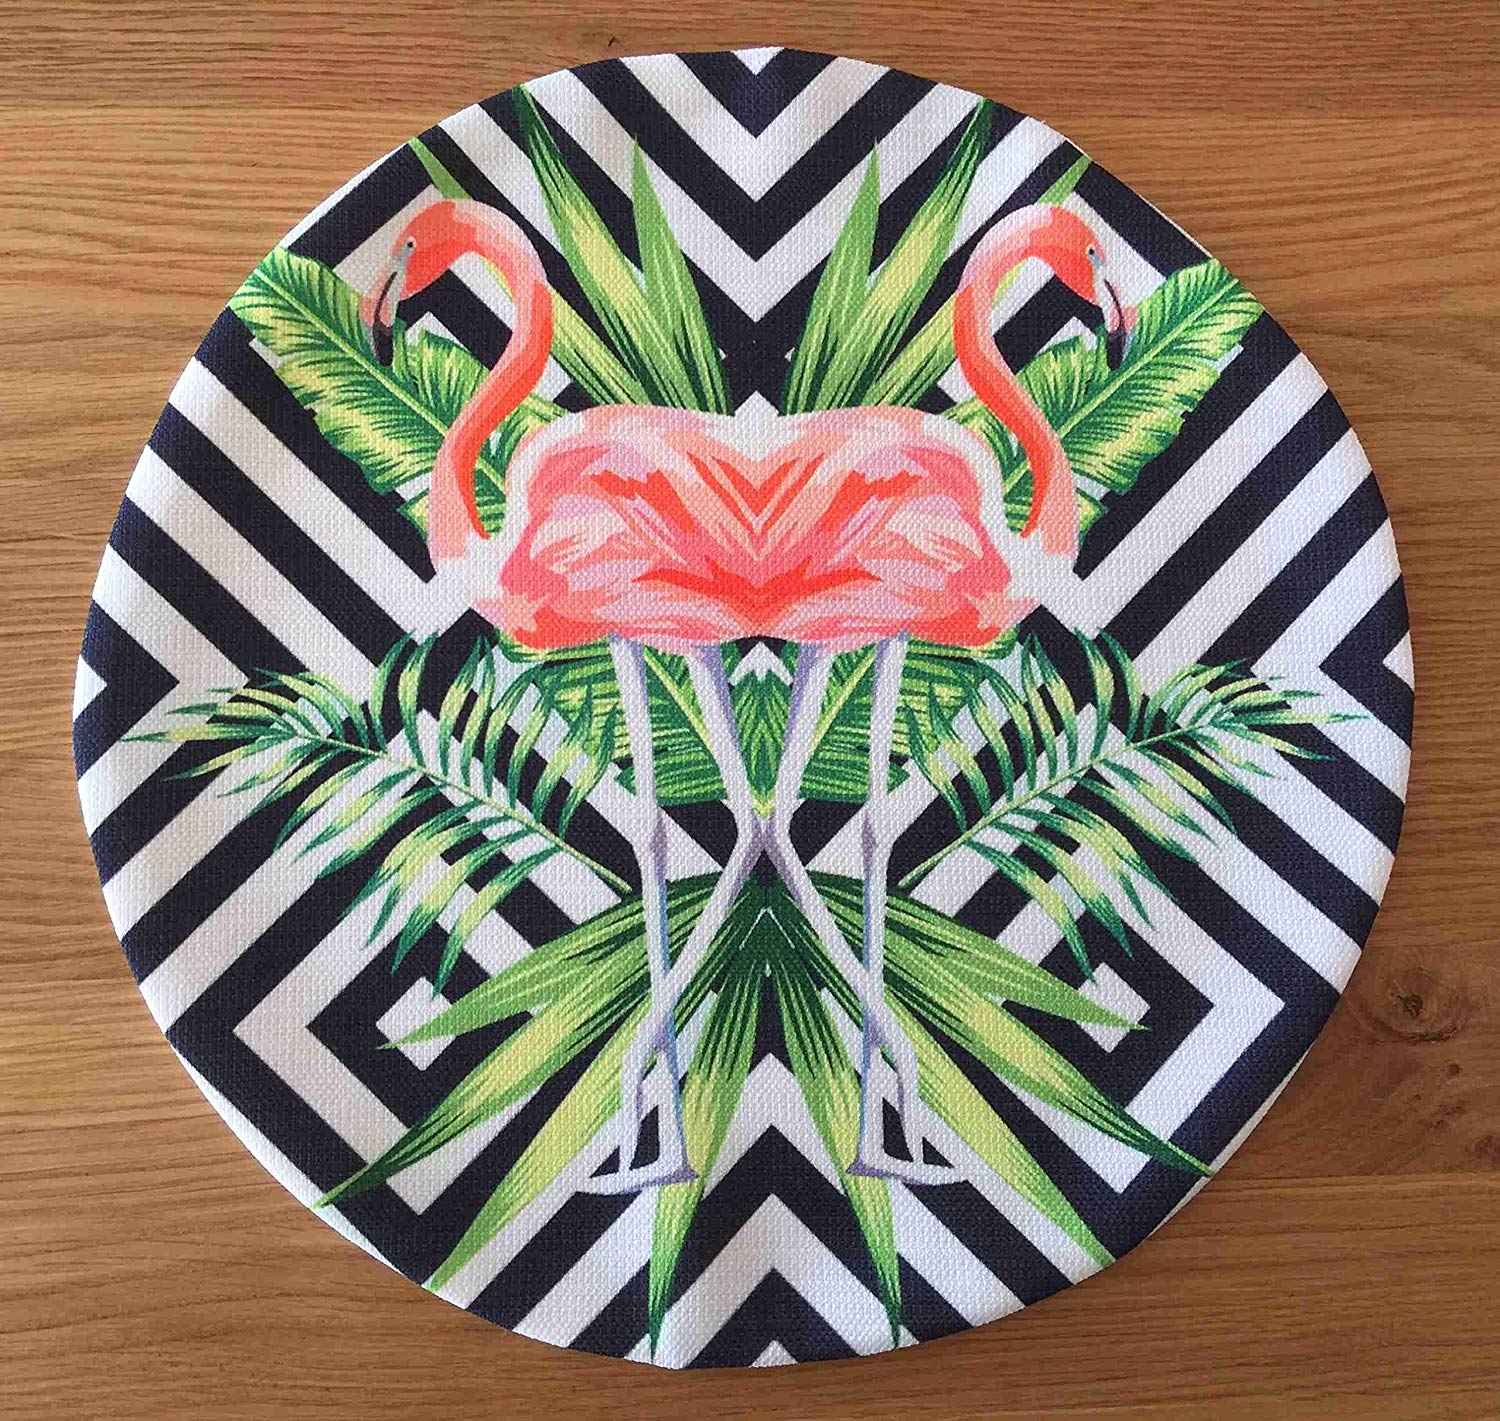 "TekgulDesign Flamingo Placemats,%100 Polyester, Handmade, Diameter: 35cm (14""), Crease Resistant and Stain-Proof Fabric, Modern and Colorful Ultra HD Graphics."